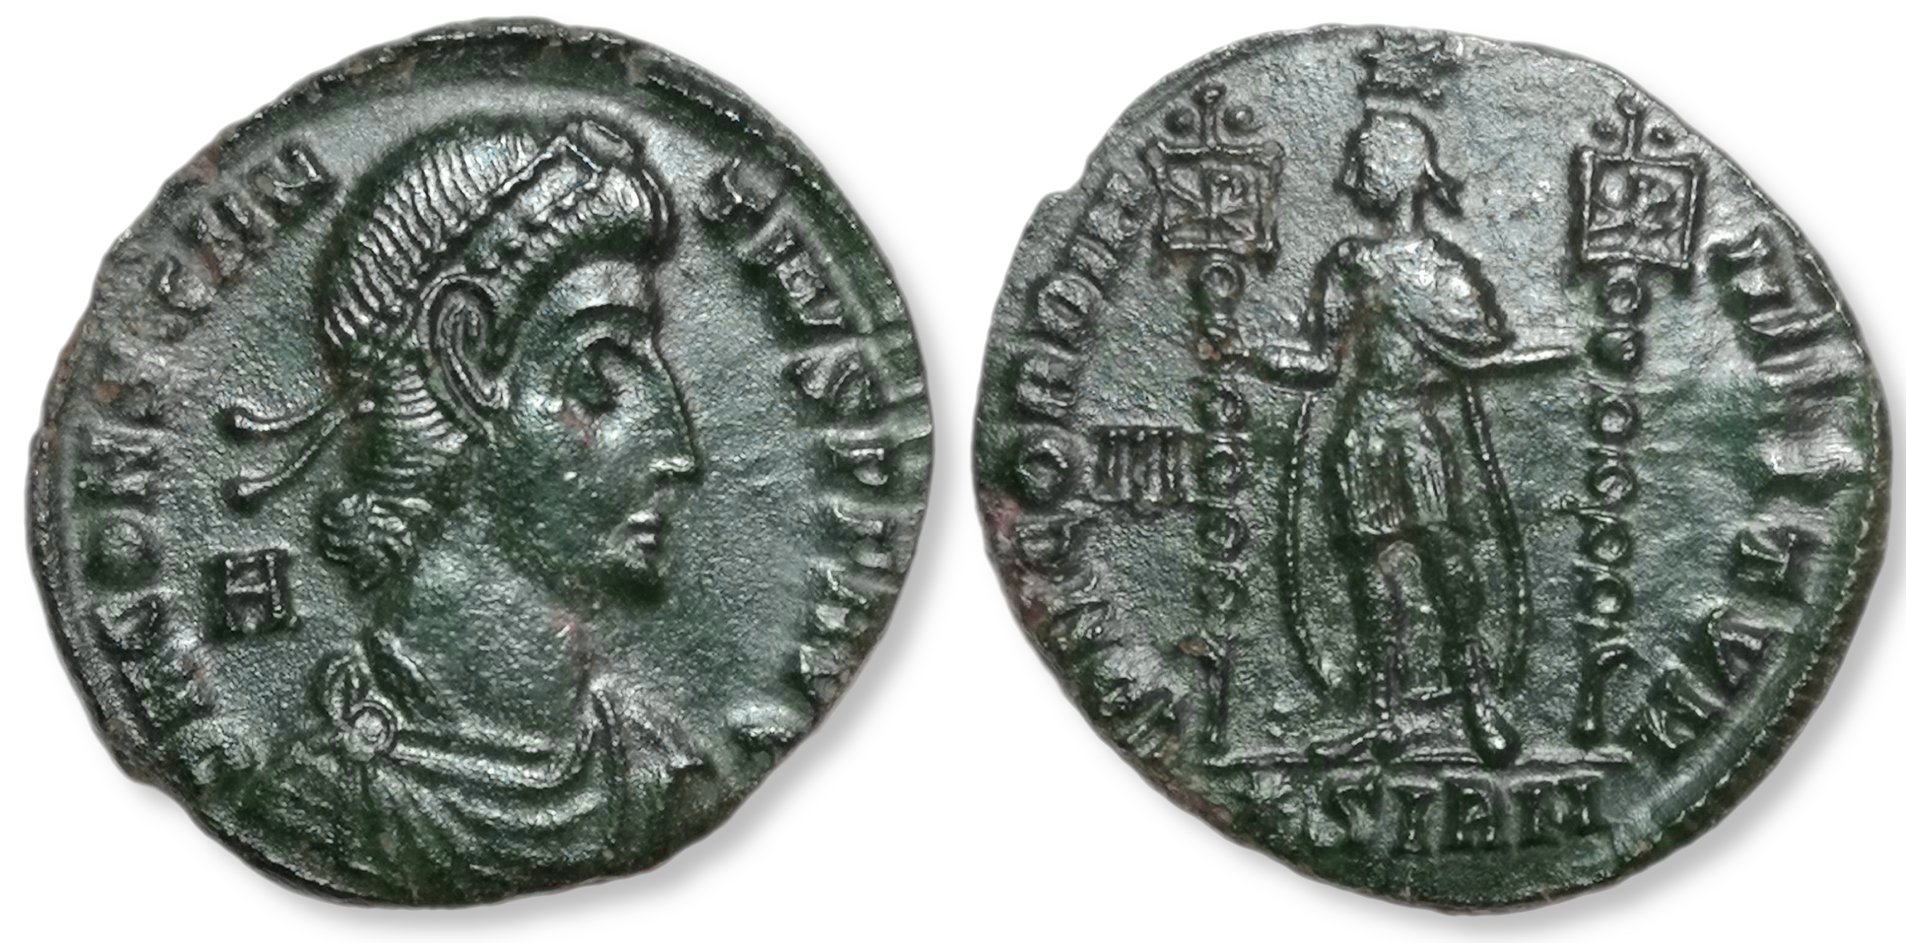 /Files/Images/Coinsite/CoinDB/constantius2.jpg